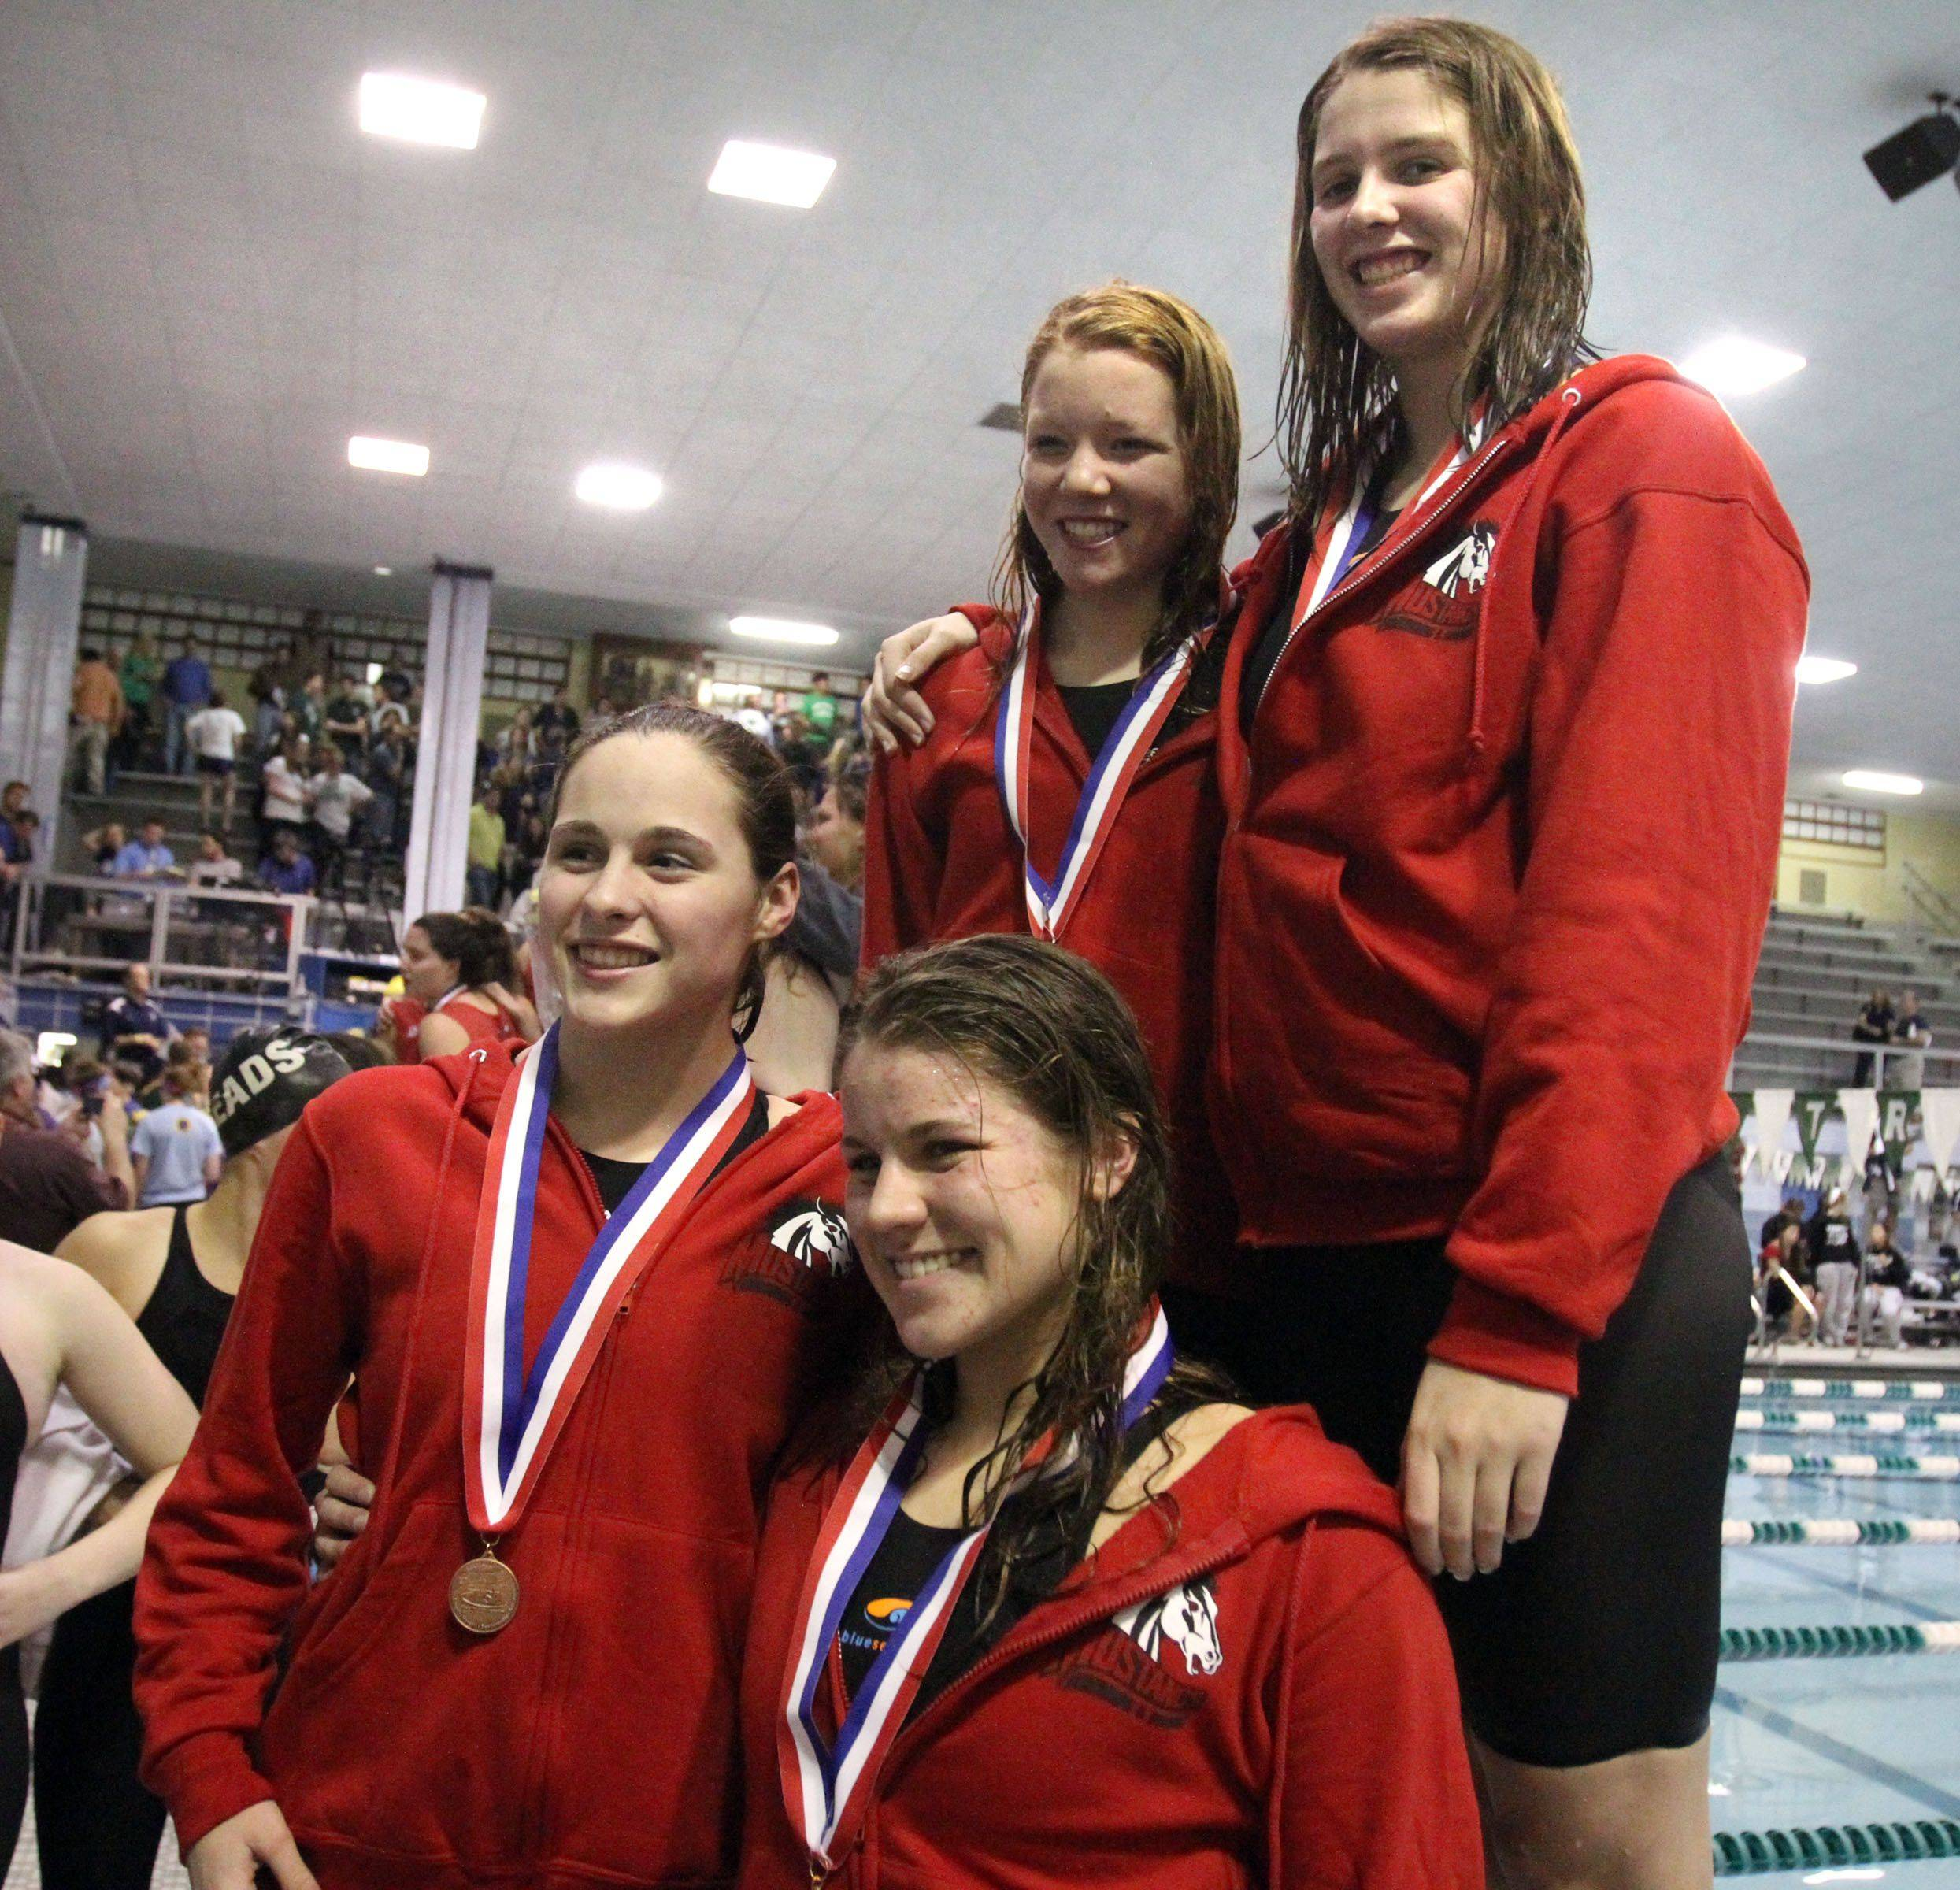 Mundelein's Erin Falconer, Amy Klink, Jennifer Kordik, and Karrie Kozokar placing eighth in the 400-yard freestyle relay at IHSA state championships in Winnetka on Saturday, November 19th.